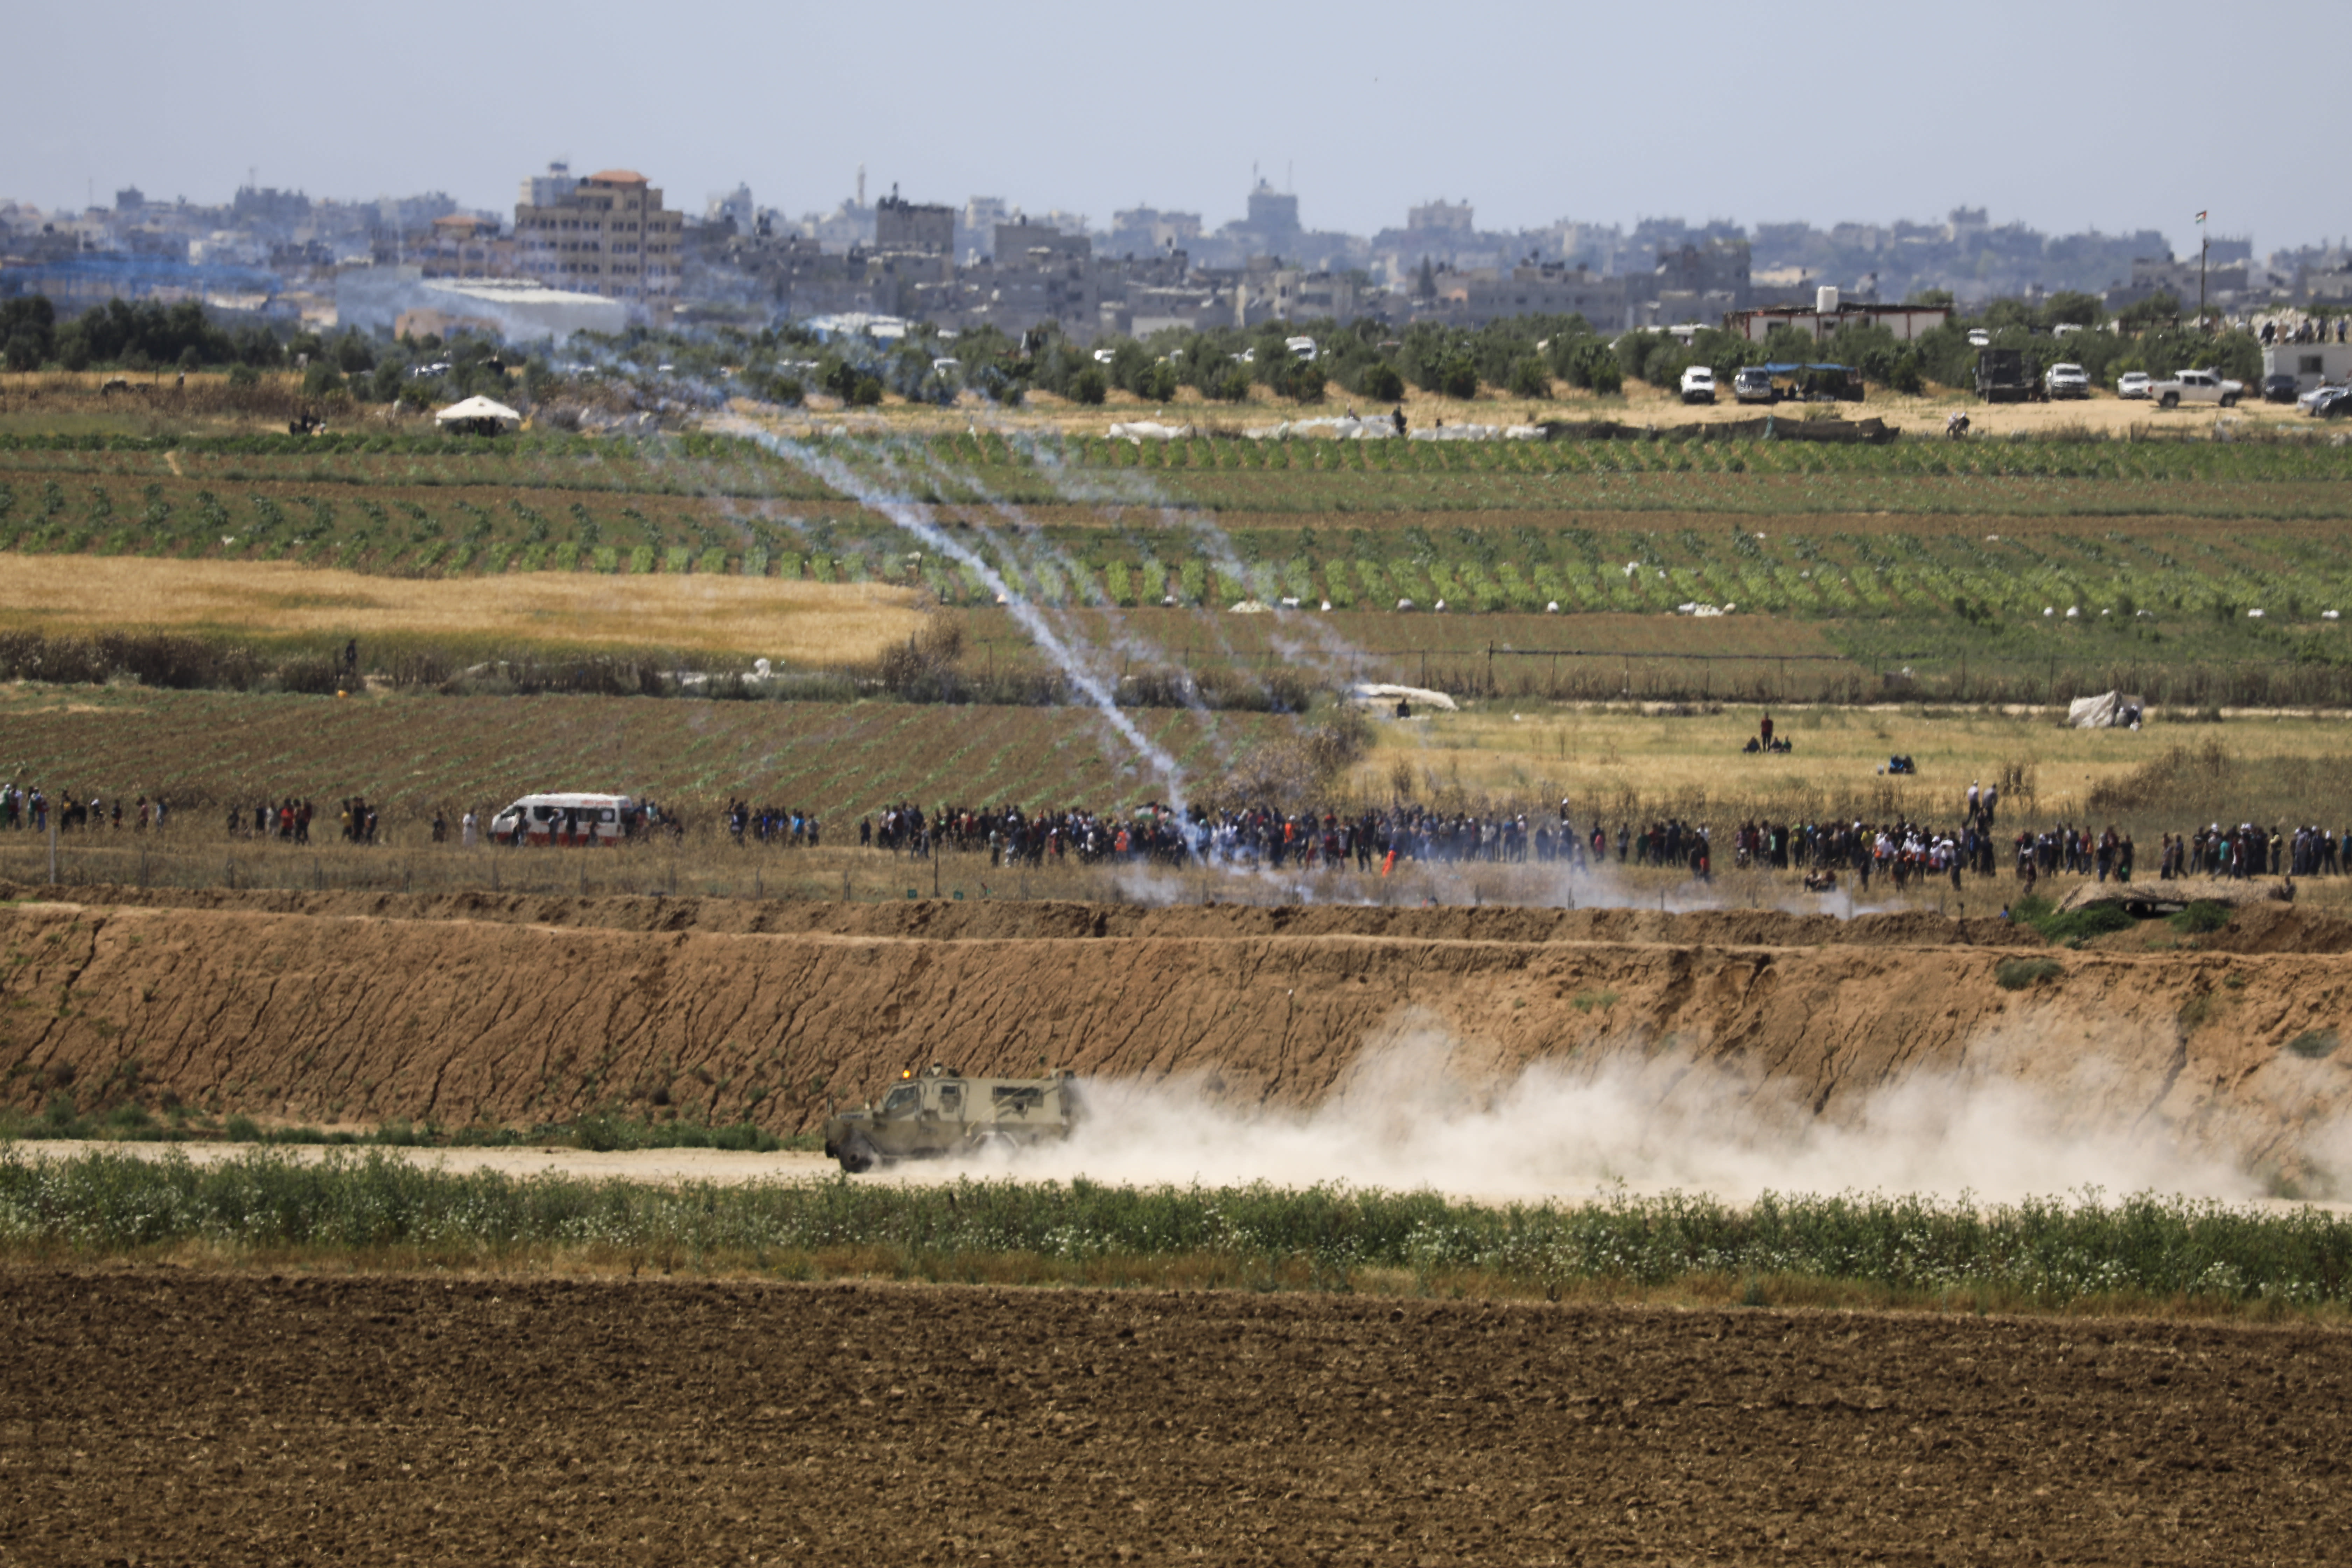 """Israeli troops fire tear gas at Palestinian protestord at he Israel and Gaza border fence, Wednesday, May 15, 2019. Palestinians are marking the 71st anniversary of their mass displacement during the 1948 war around Israel's creation. Demonstrations were held across the Israeli-occupied West Bank and the Gaza Strip on Wednesday to mark what the Palestinians call the """"nakba,"""" or """"catastrophe."""" (AP Photo/Tsafrir Abayov)"""